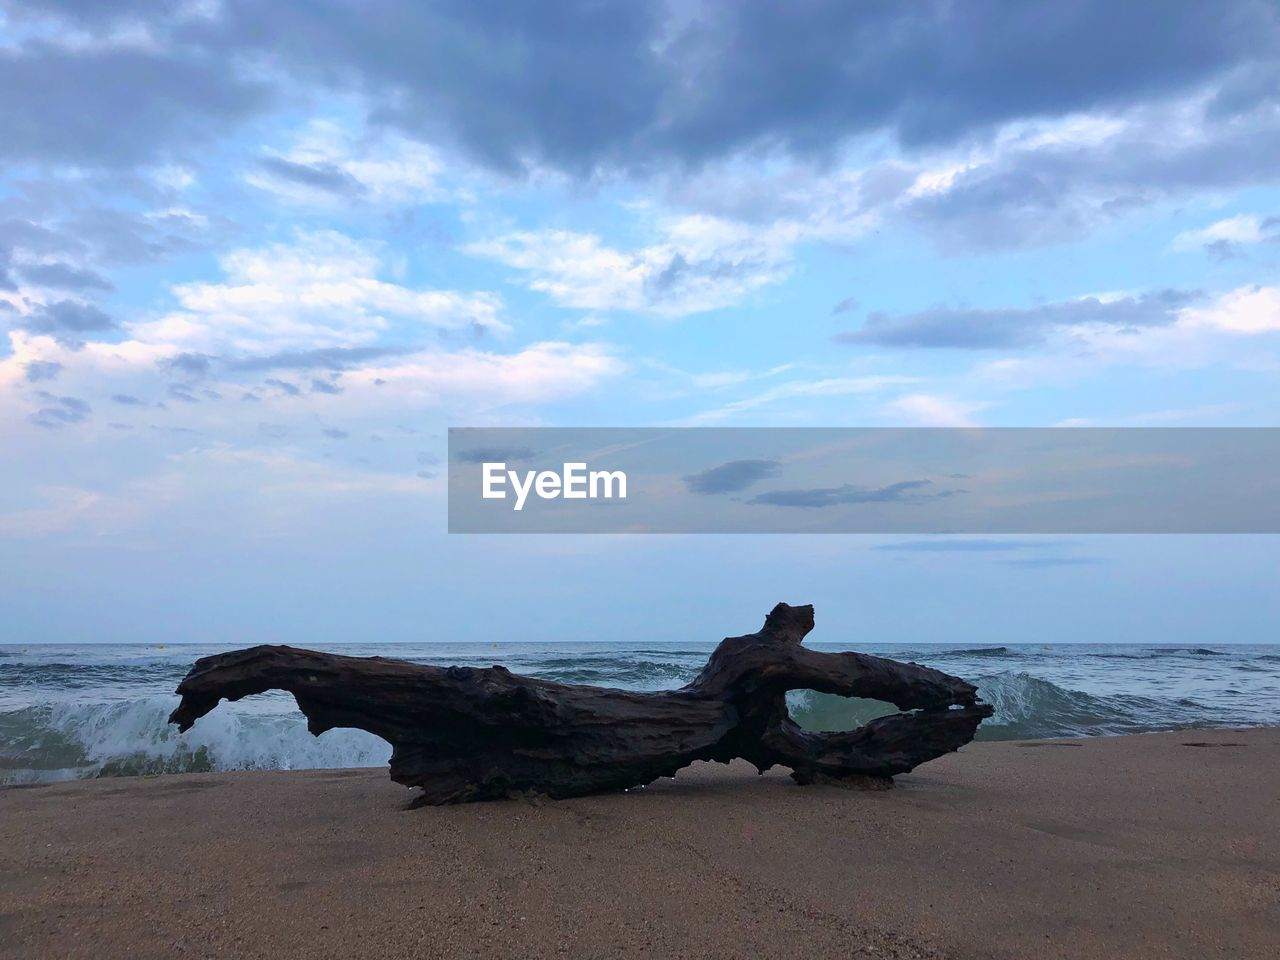 sea, sky, water, beach, land, cloud - sky, horizon over water, scenics - nature, horizon, beauty in nature, tranquility, tranquil scene, nature, driftwood, day, no people, sand, non-urban scene, idyllic, wood, outdoors